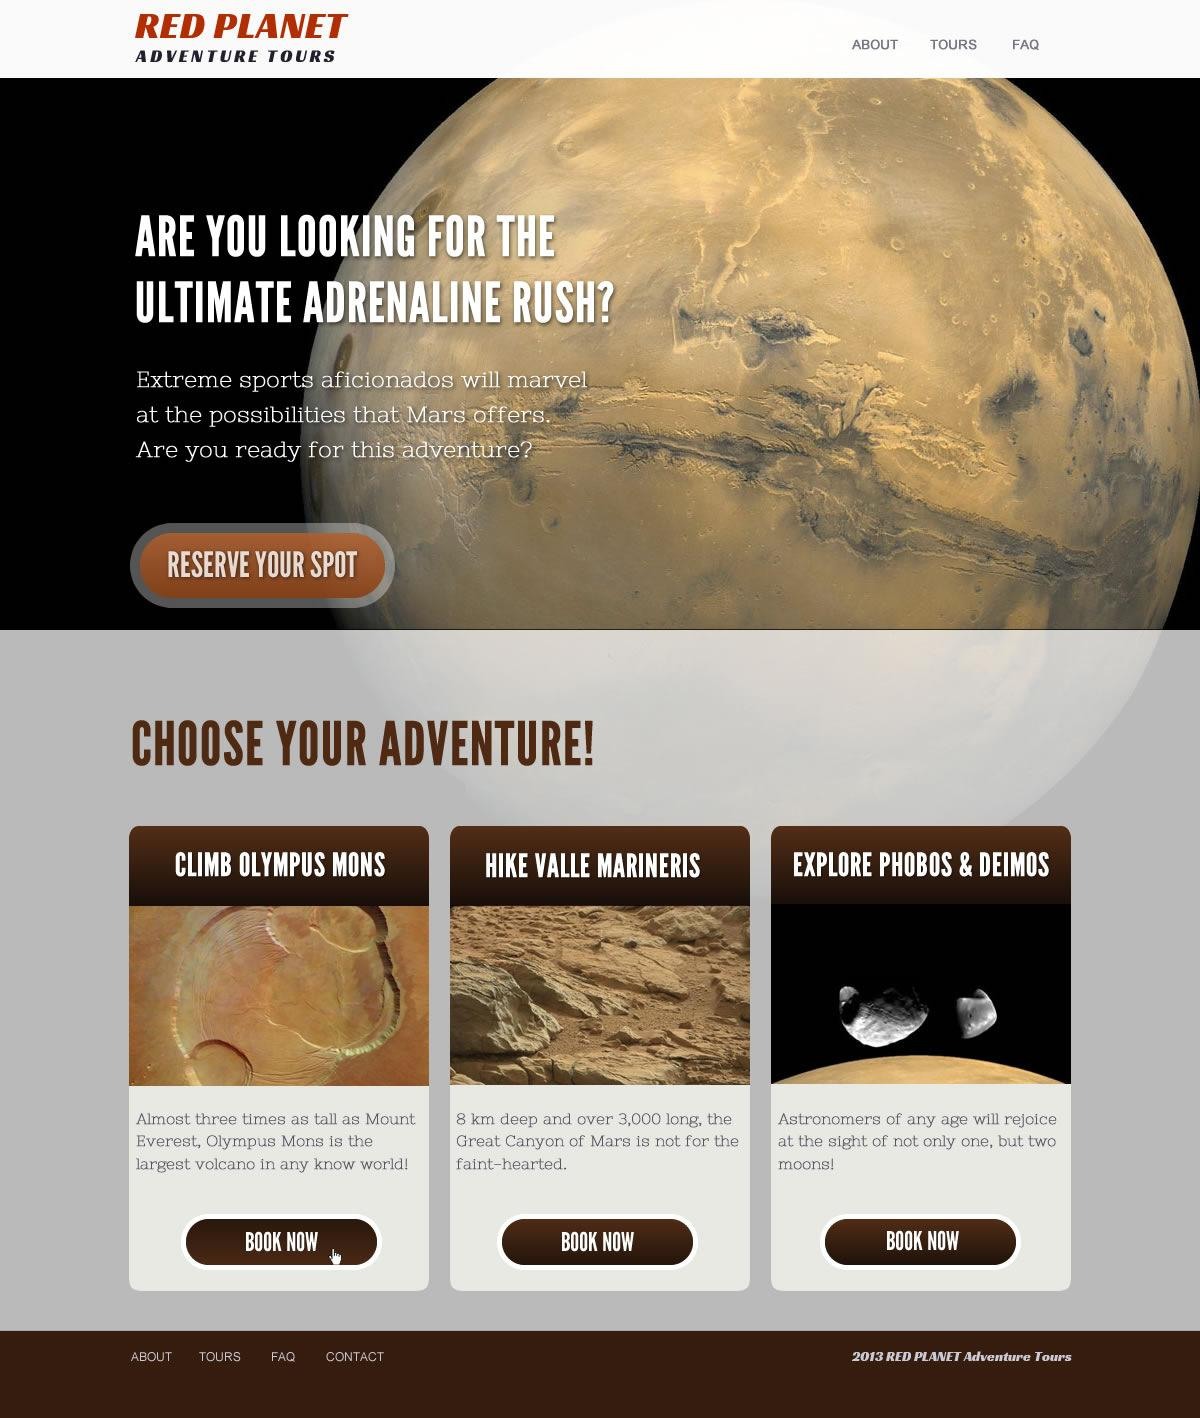 Red Planet Adventures Tours - image 2 - student project